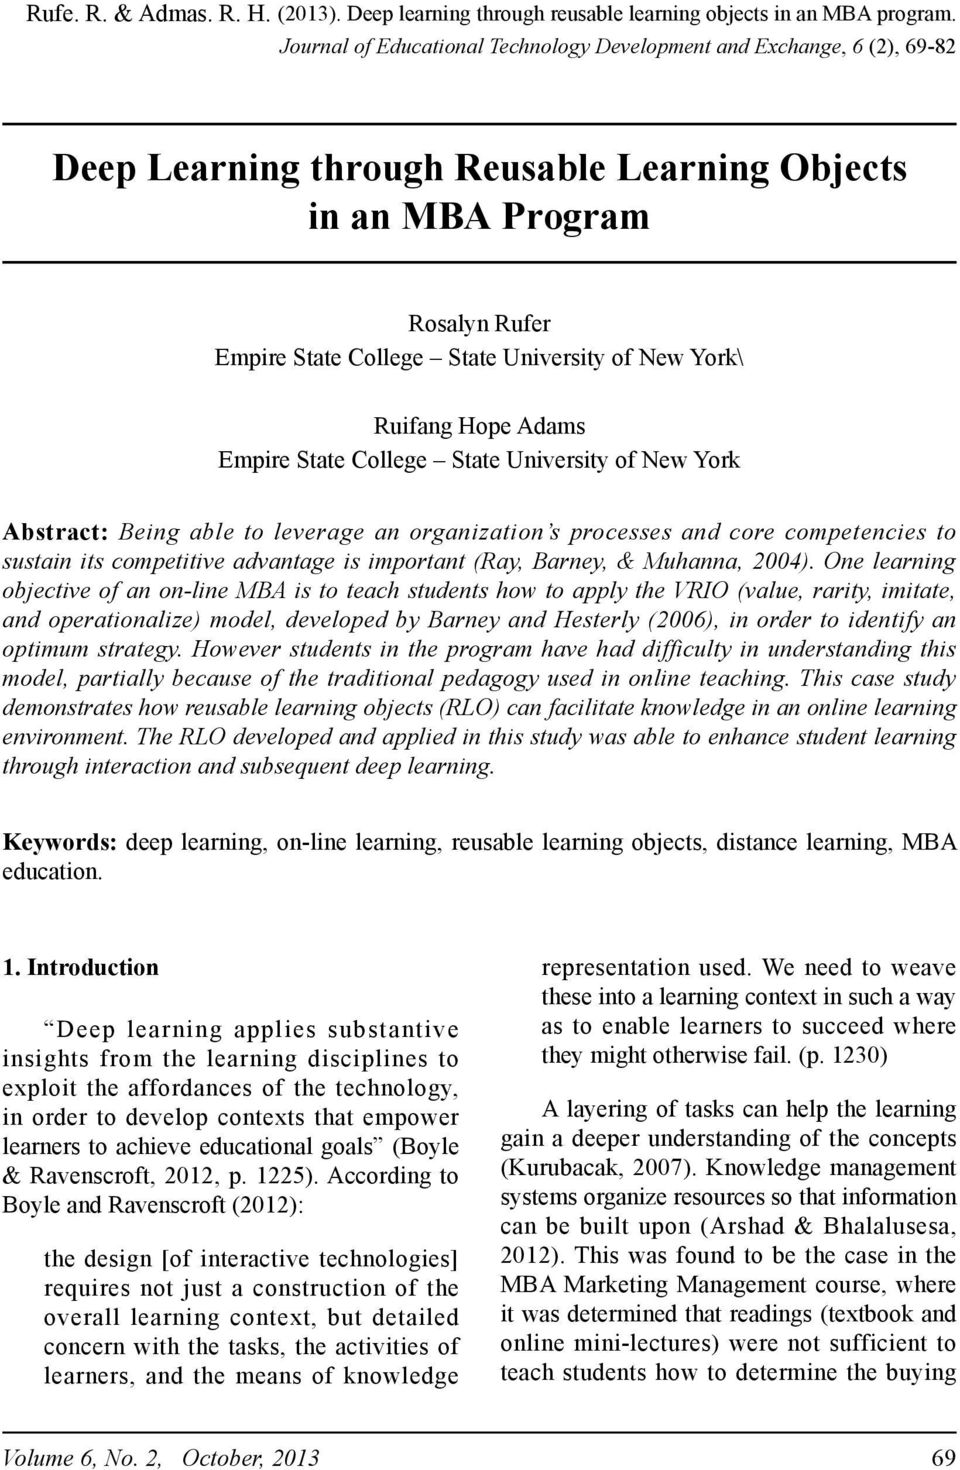 York\ Ruifang Hope Adams Empire State College State University of New York Abstract: Being able to leverage an organization s processes and core competencies to sustain its competitive advantage is